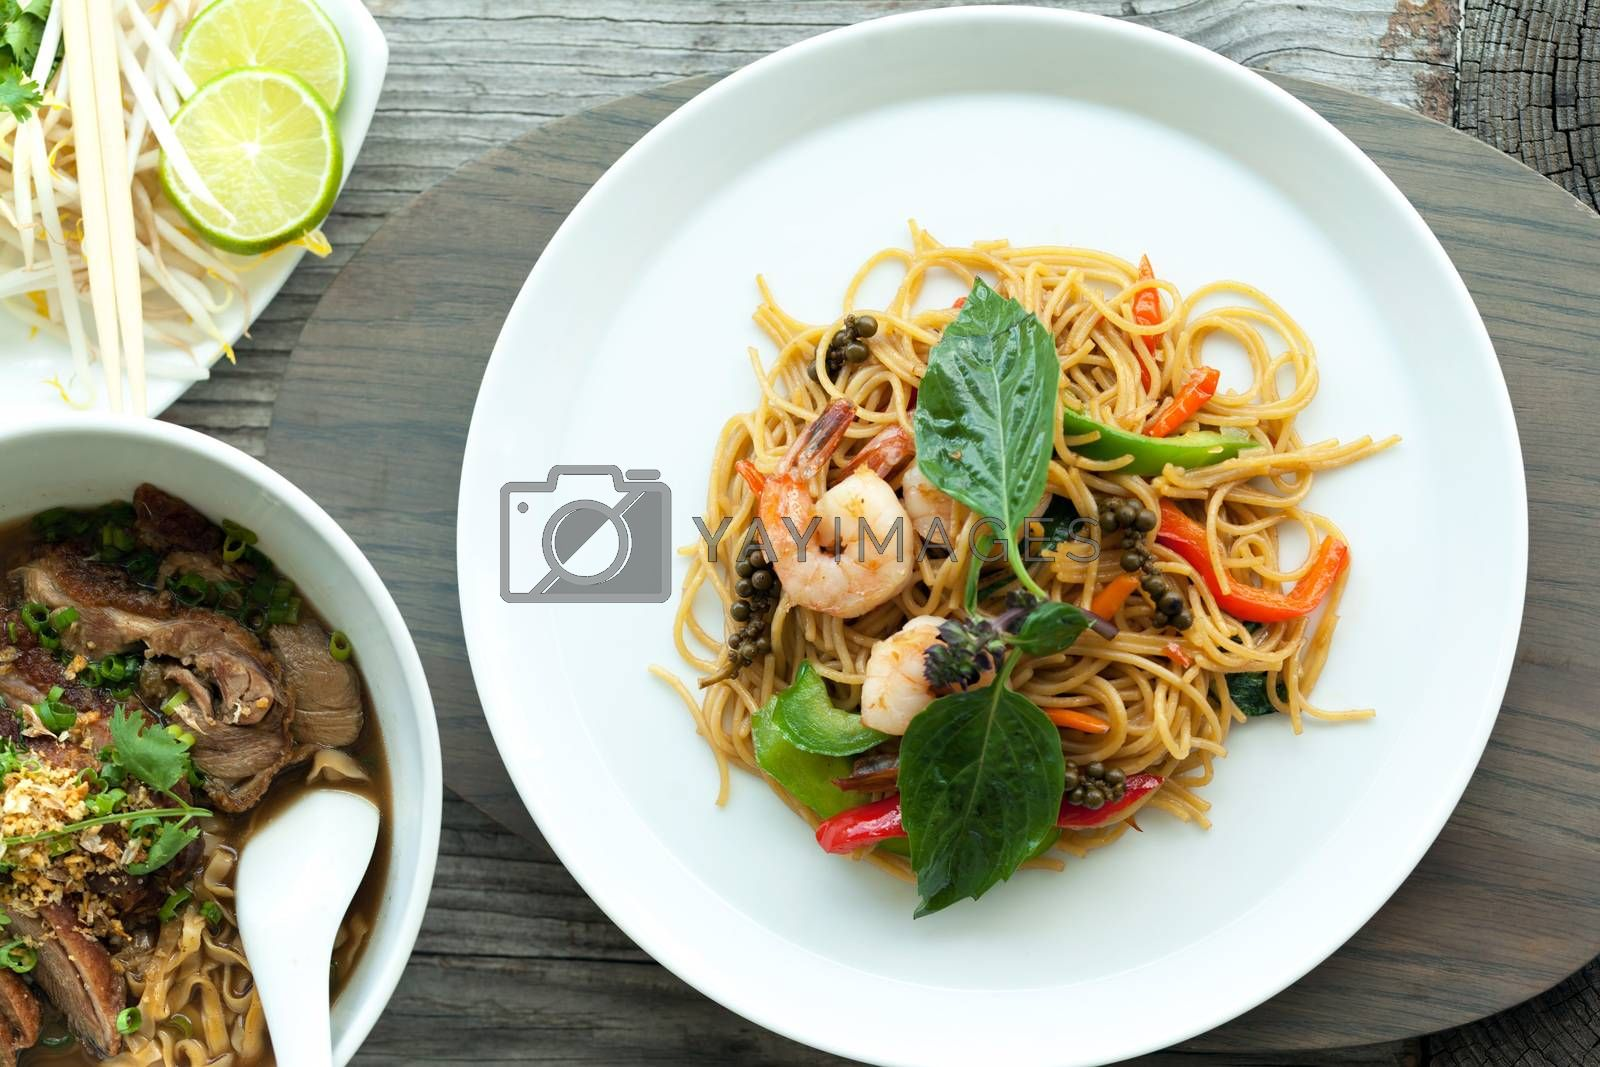 Thai food dishes with shrimp and noodles and soup with duck.